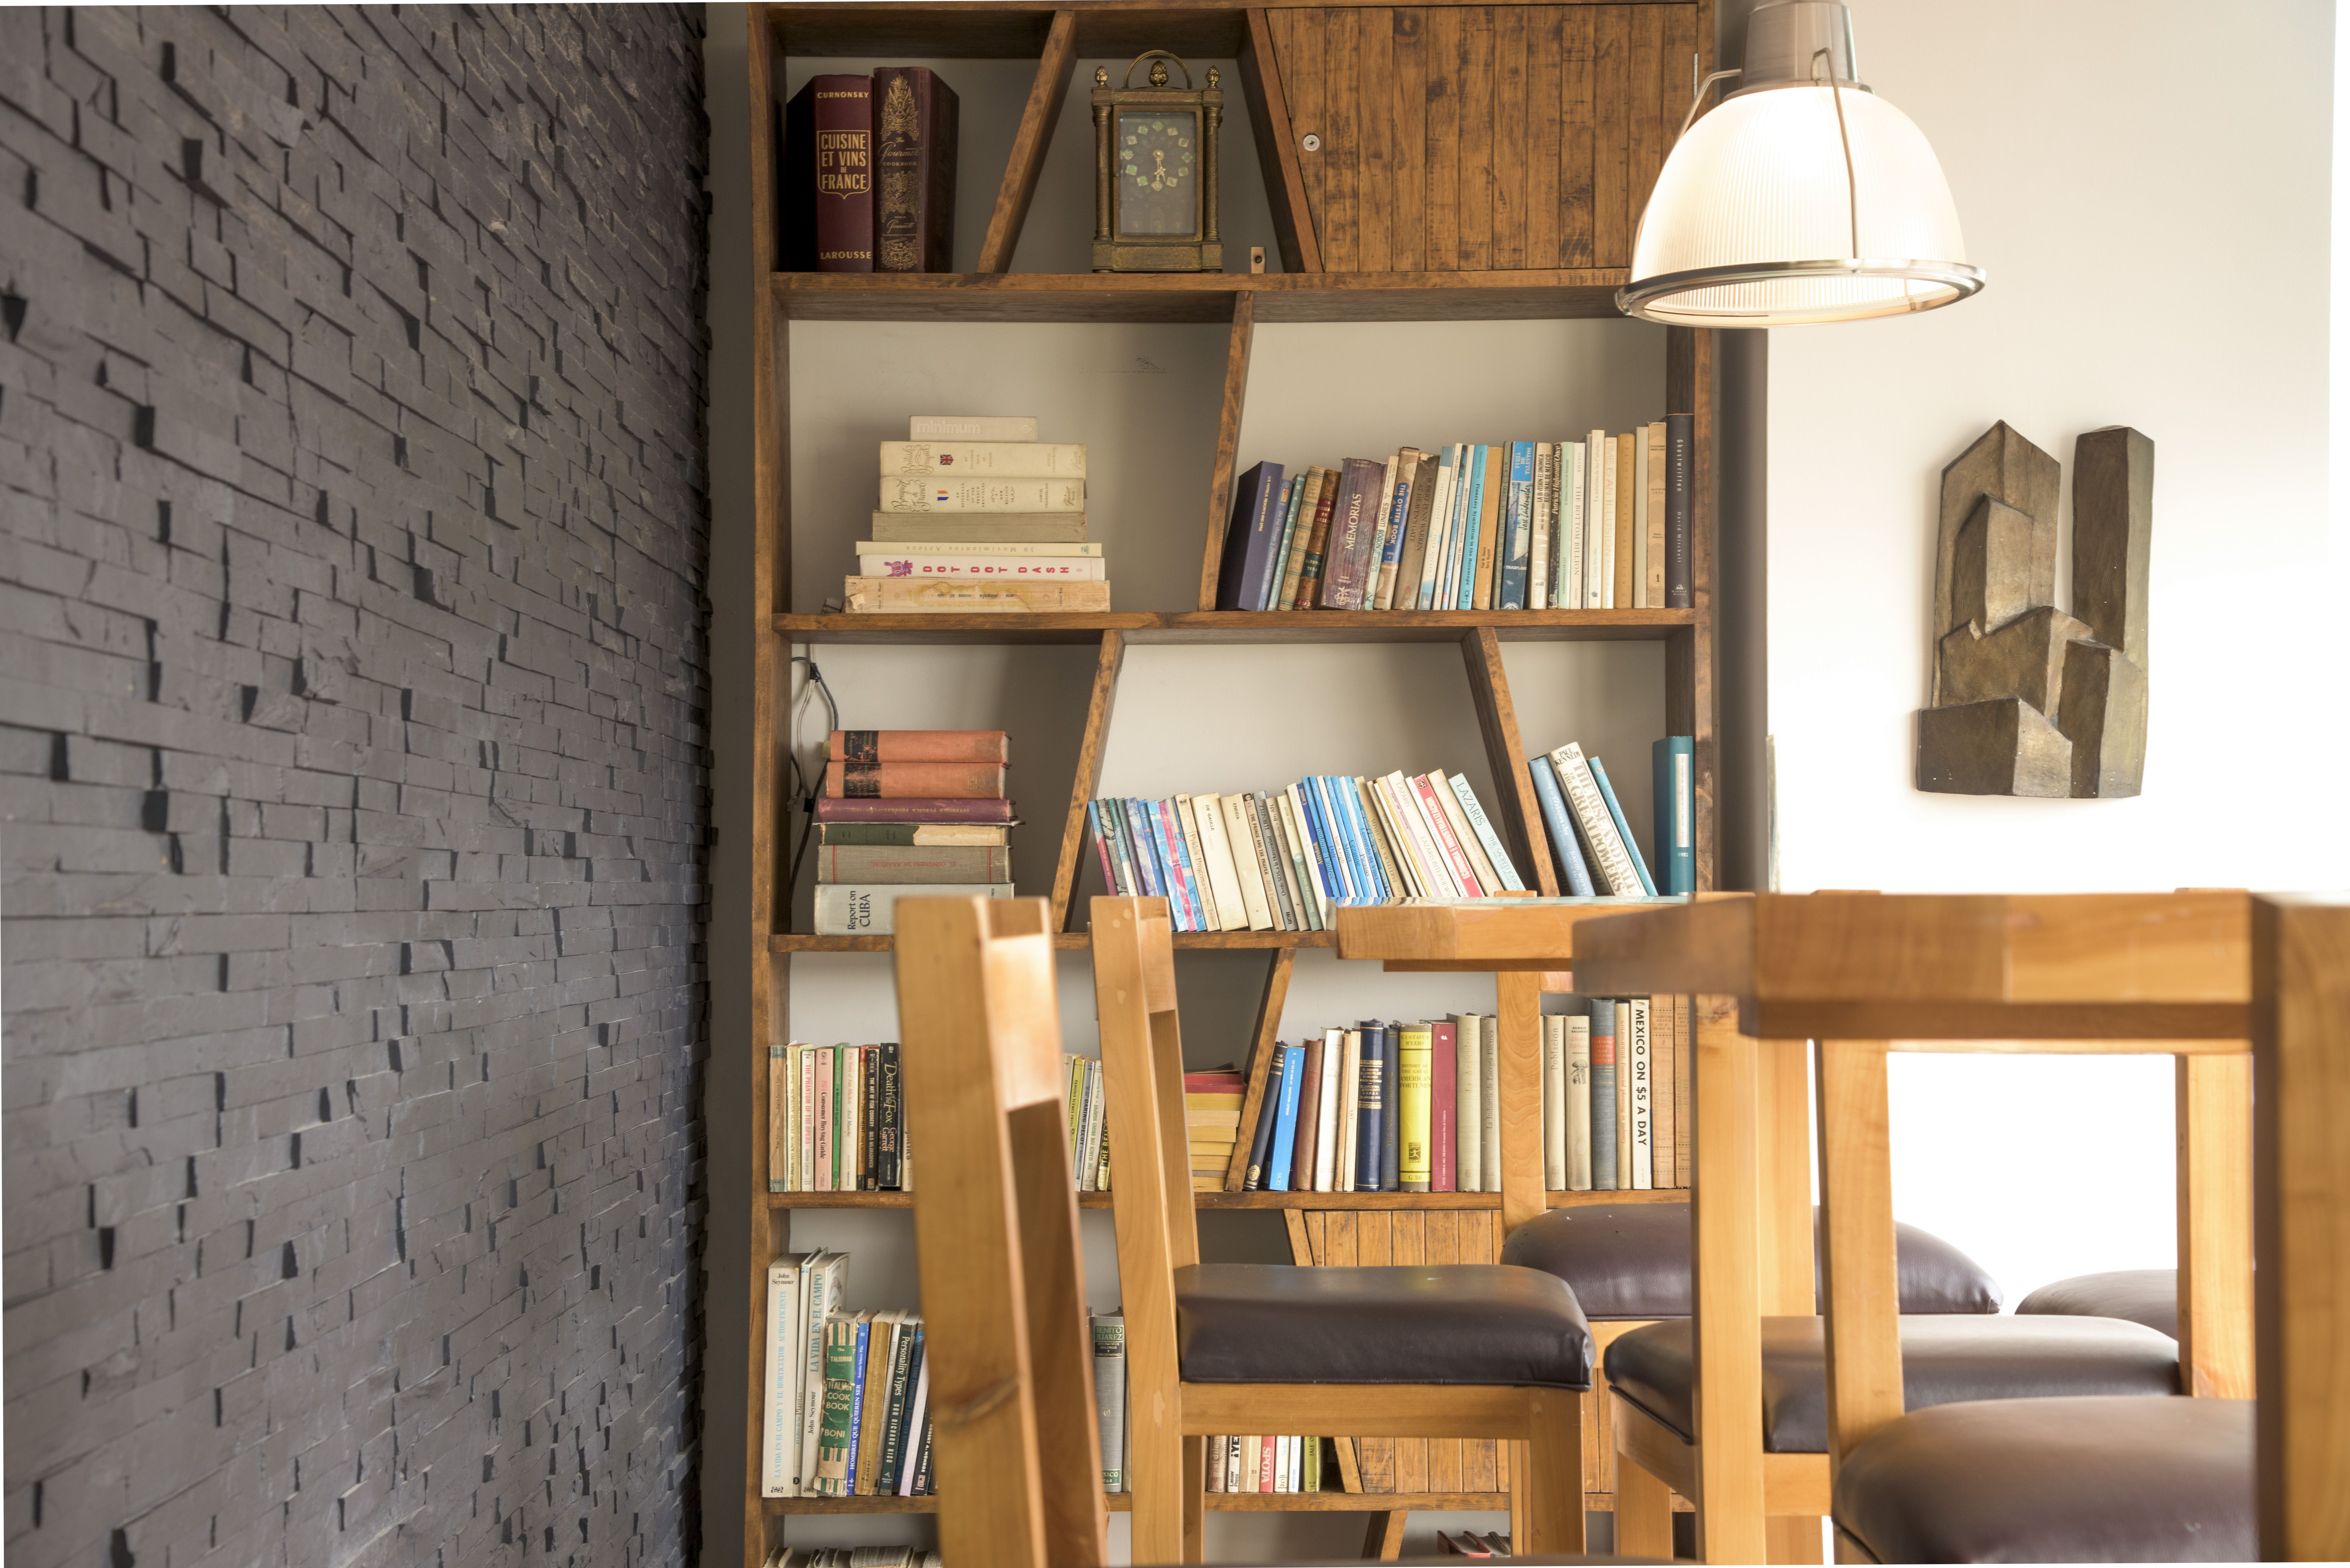 shelving vintage ideas bookshelf small book a wall bookcase looking for bookshelves room creative wooden living bookcases rolling interesting spaces